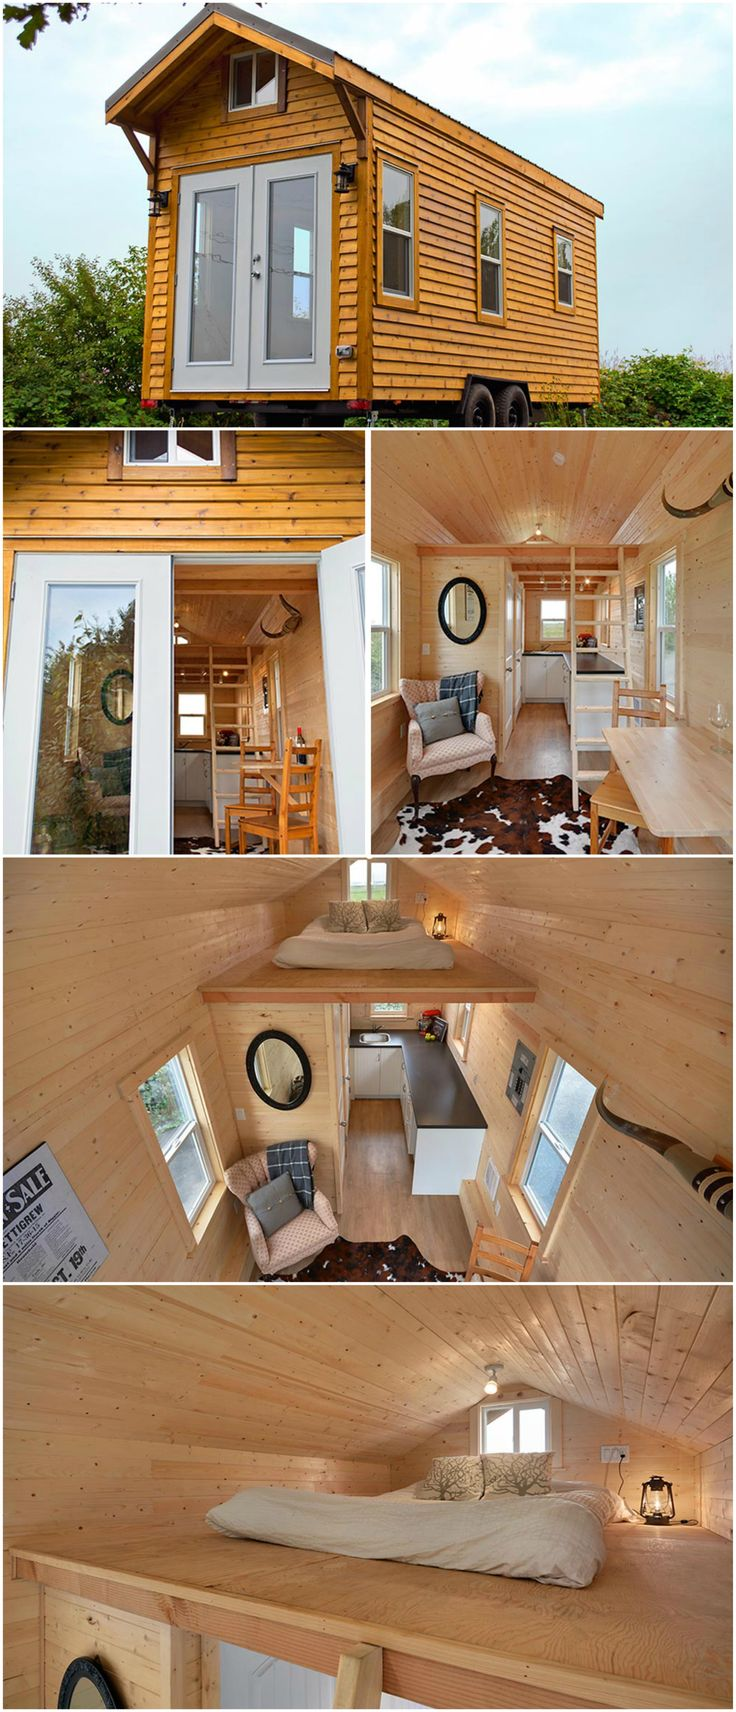 Cabin in the Woods is the rustic exterior model by Mint Tiny Homes. As with their other models, the Cabin can be built with either wood or metal framing and 20′, 22′, or 24′ lengths. French doors and windows throughout allow for plenty of natural light.  The interior uses tongue and groove wall paneling, linoleum flooring, and propane heating. There are 4″x4″ exposed cedar roof beams under the bedroom loft.